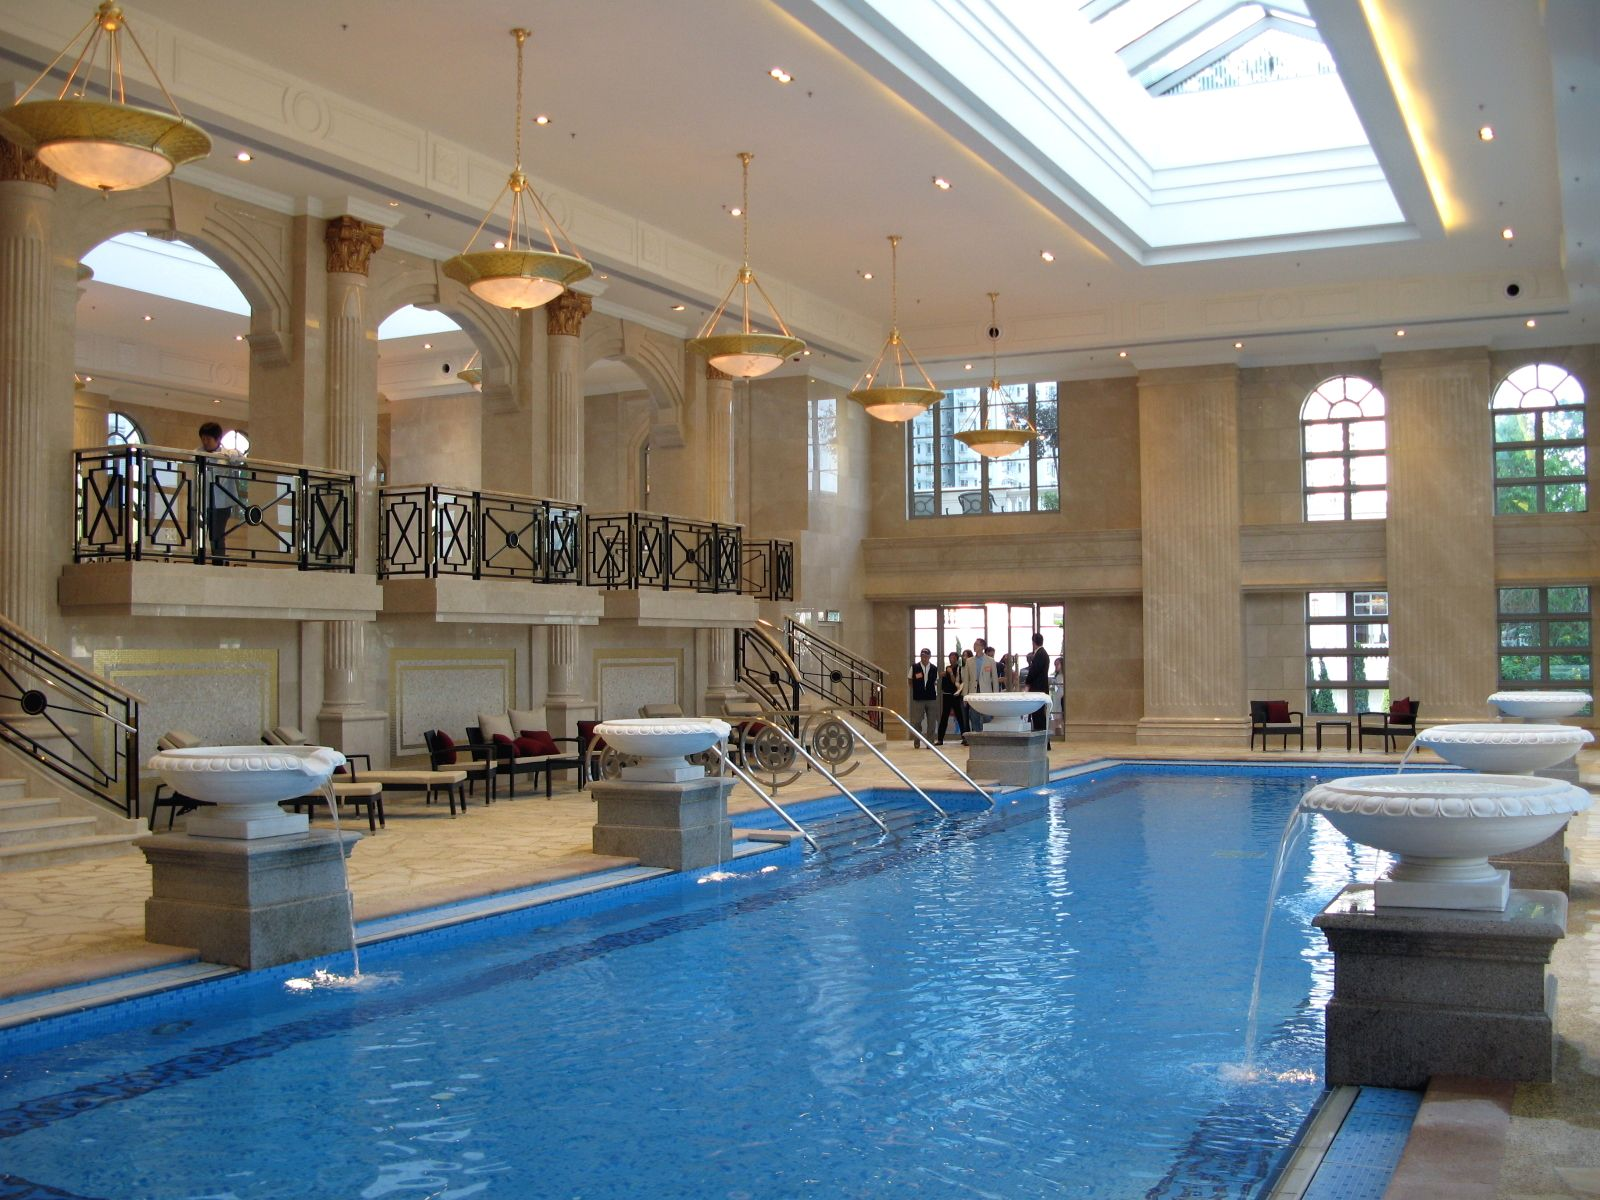 16 best Pools images on Pinterest | Indoor swimming pools ...